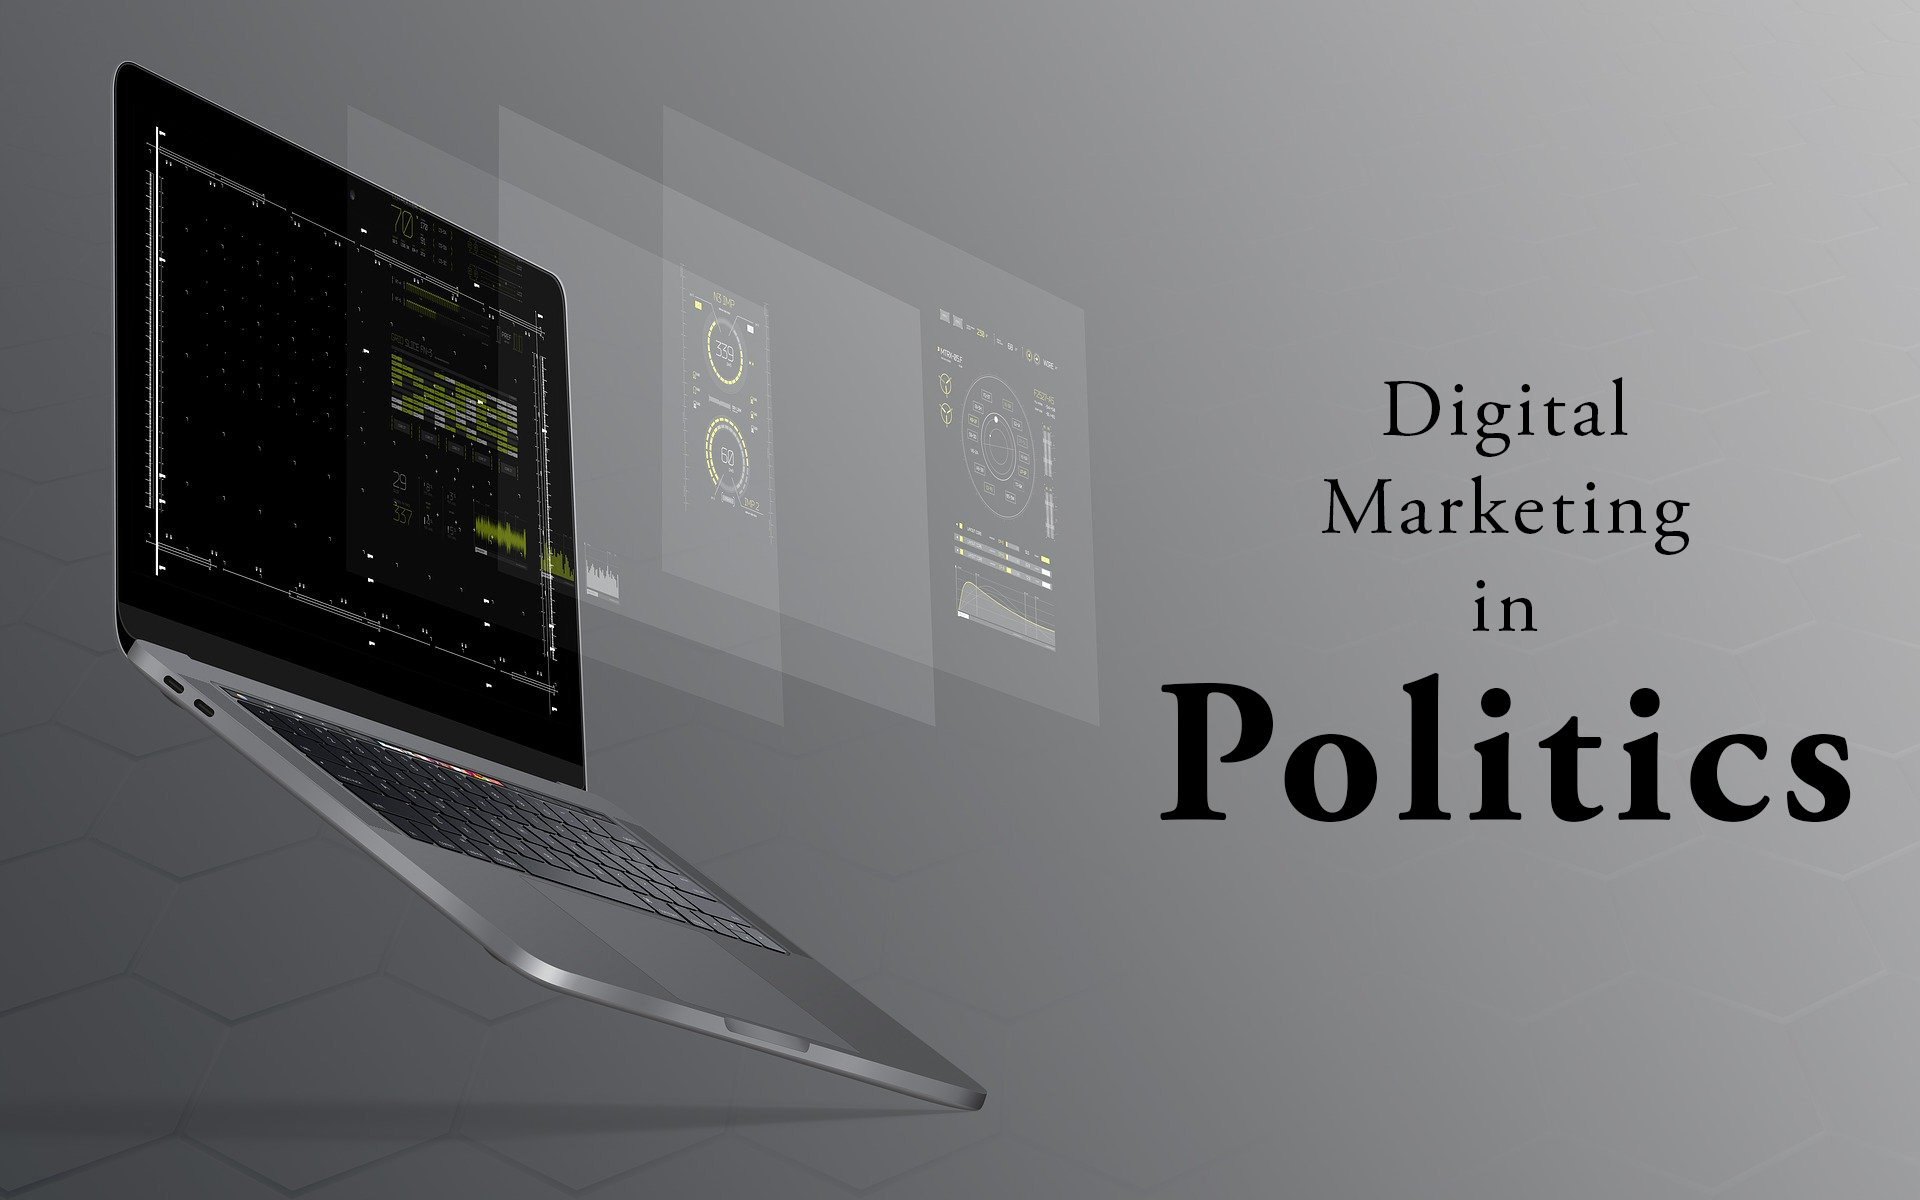 How digital marketing used by Political parties for Promotion